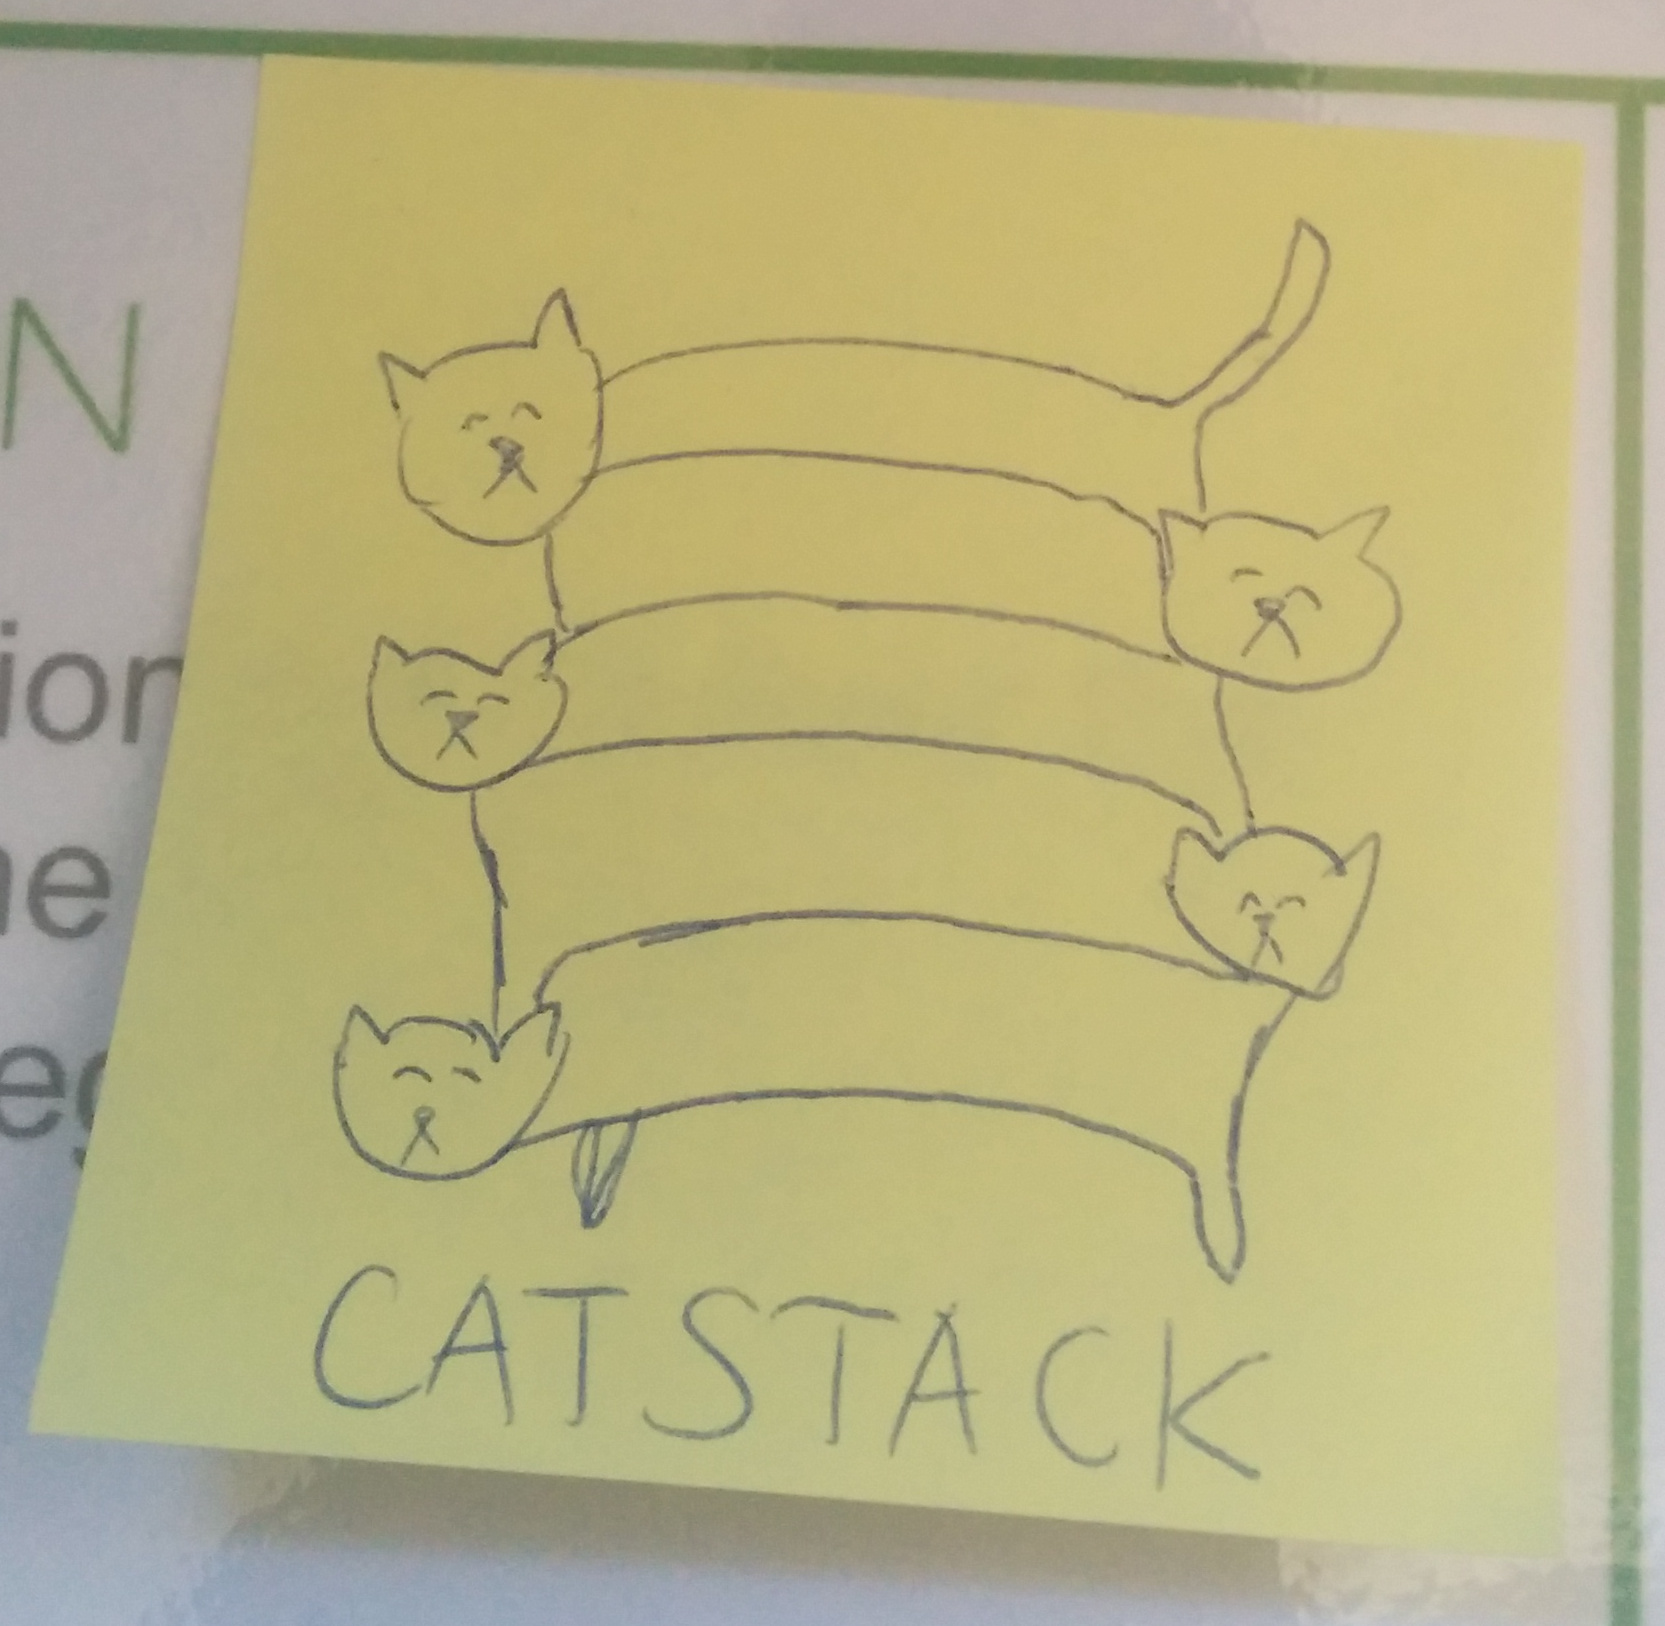 catstack on a post-it note